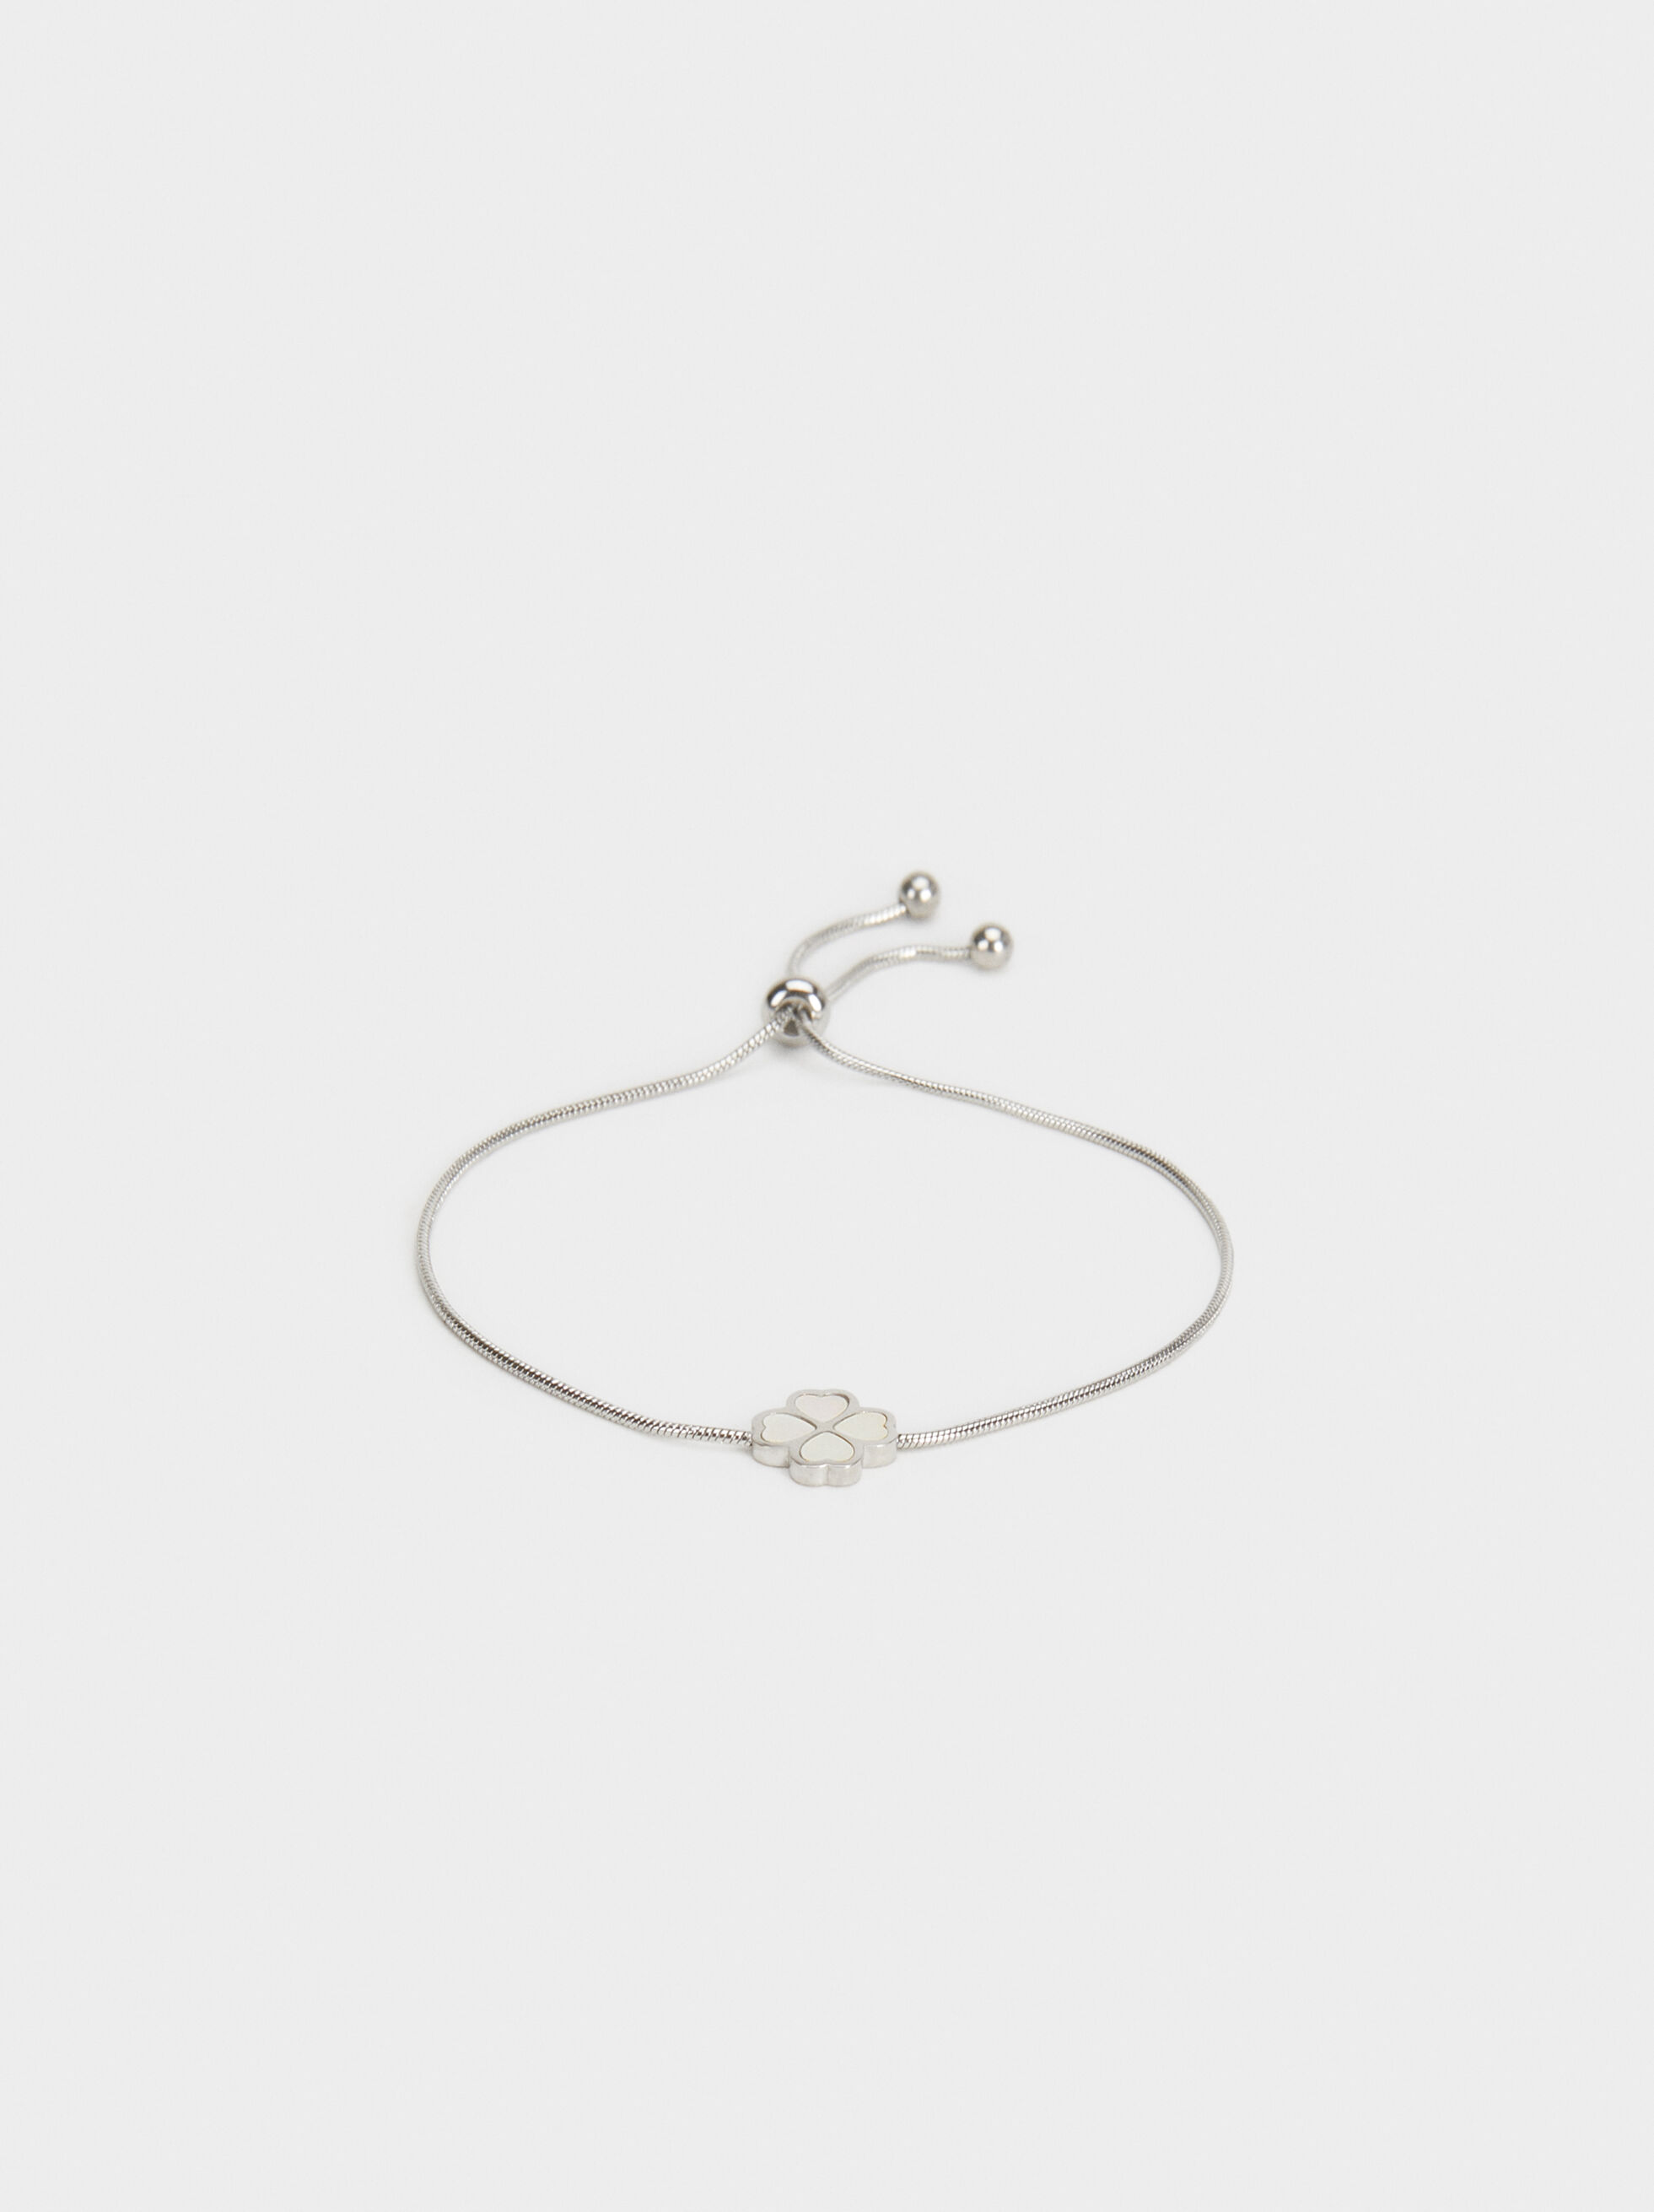 Adjustable Stainless Steel Bracelet With Cloverlea, Silver, hi-res